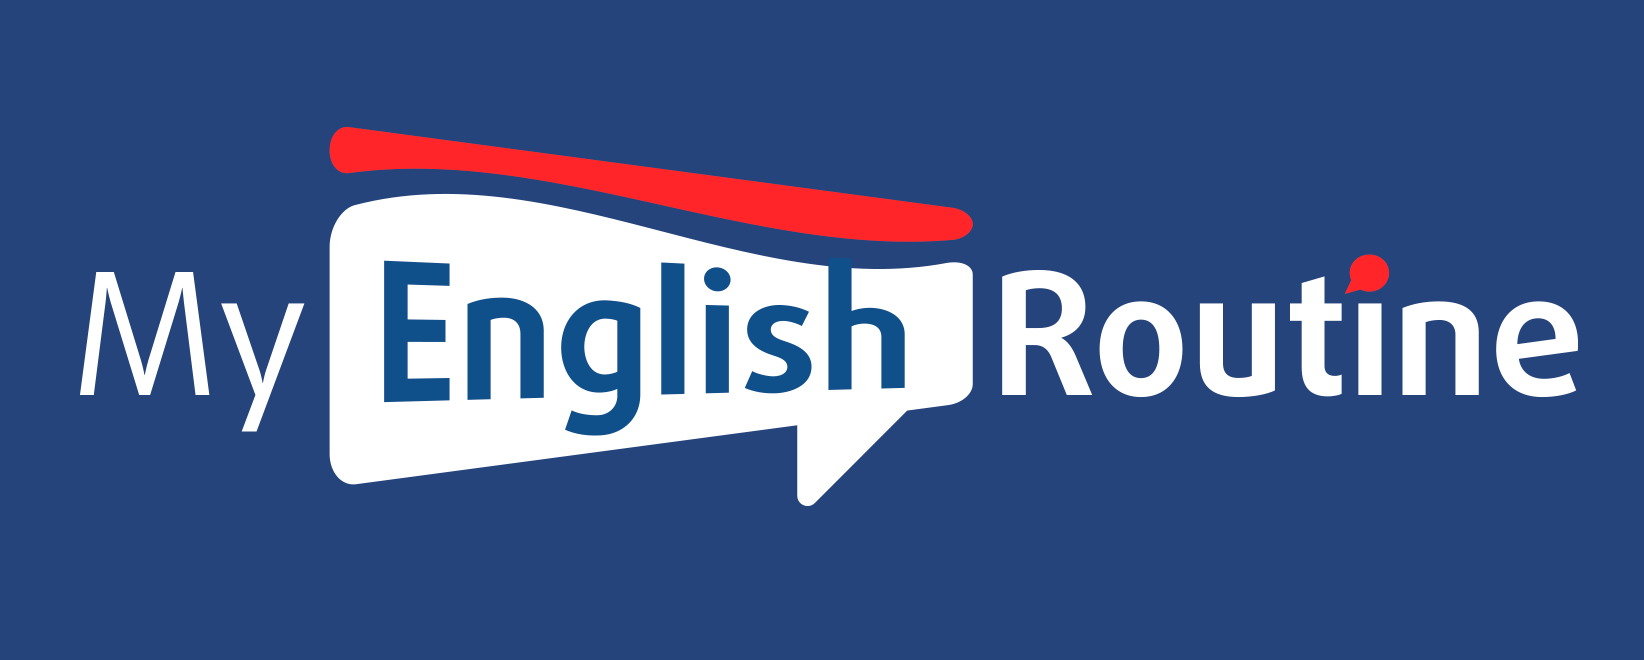 My English Routine